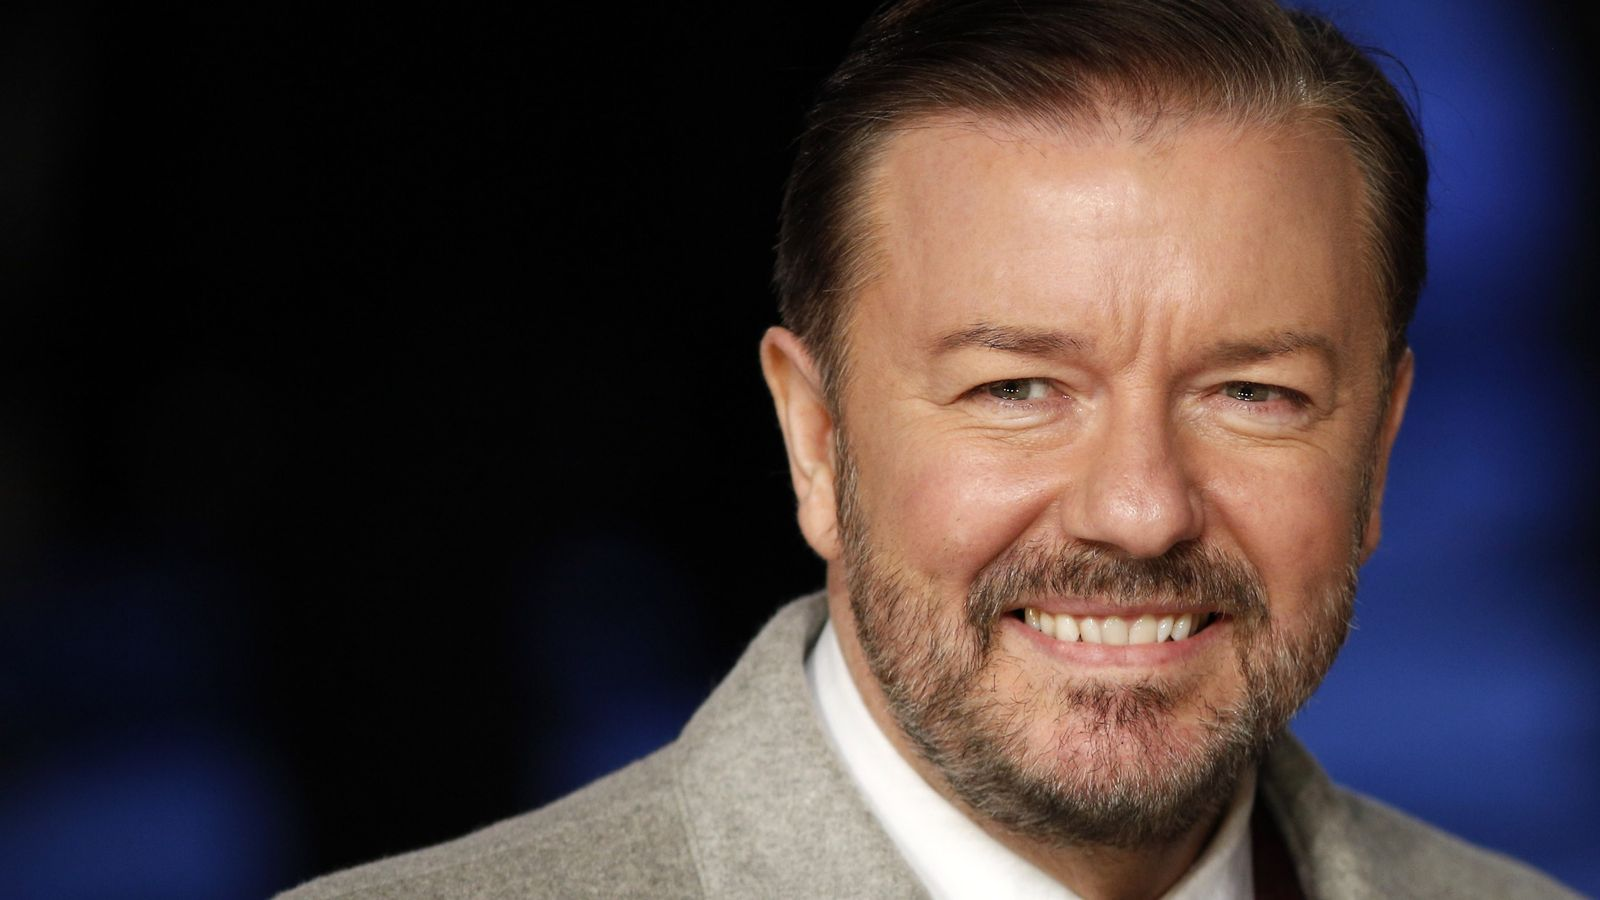 Ricky Gervais defends AIDS joke after backlash